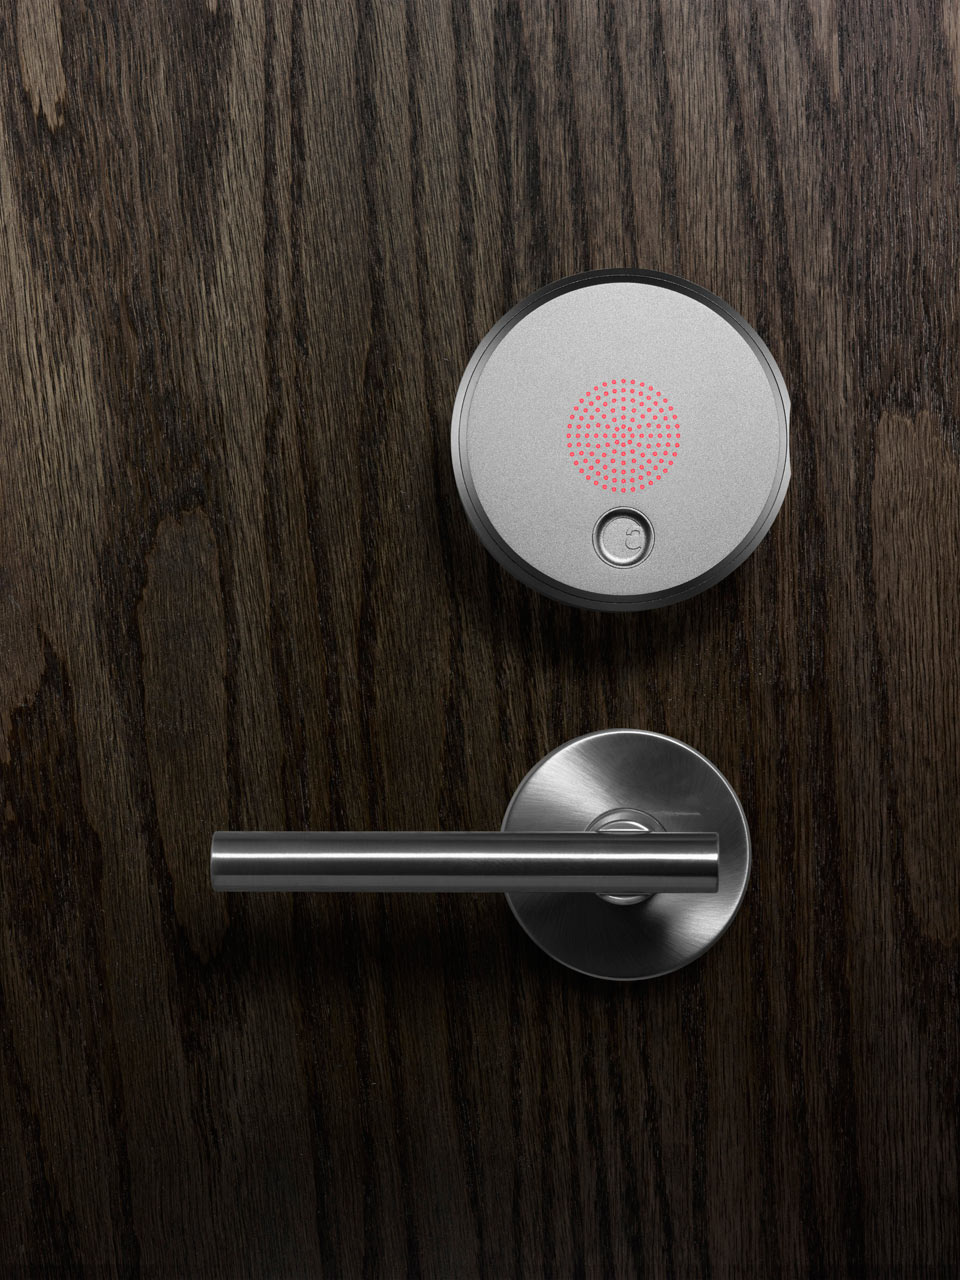 August-Smart-Lock-5-locked